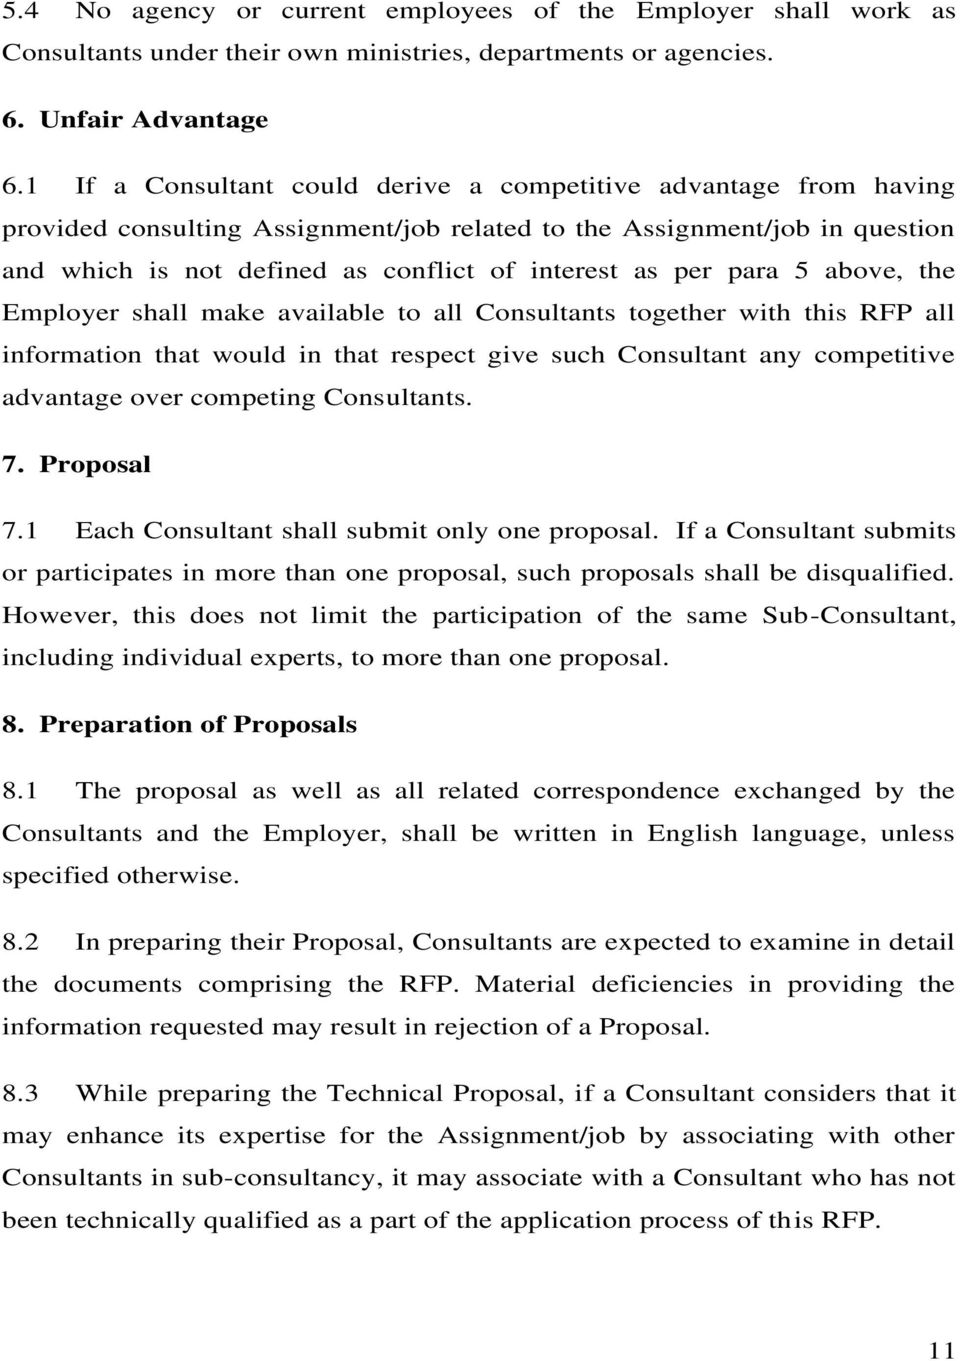 para 5 above, the Employer shall make available to all Consultants together with this RFP all information that would in that respect give such Consultant any competitive advantage over competing